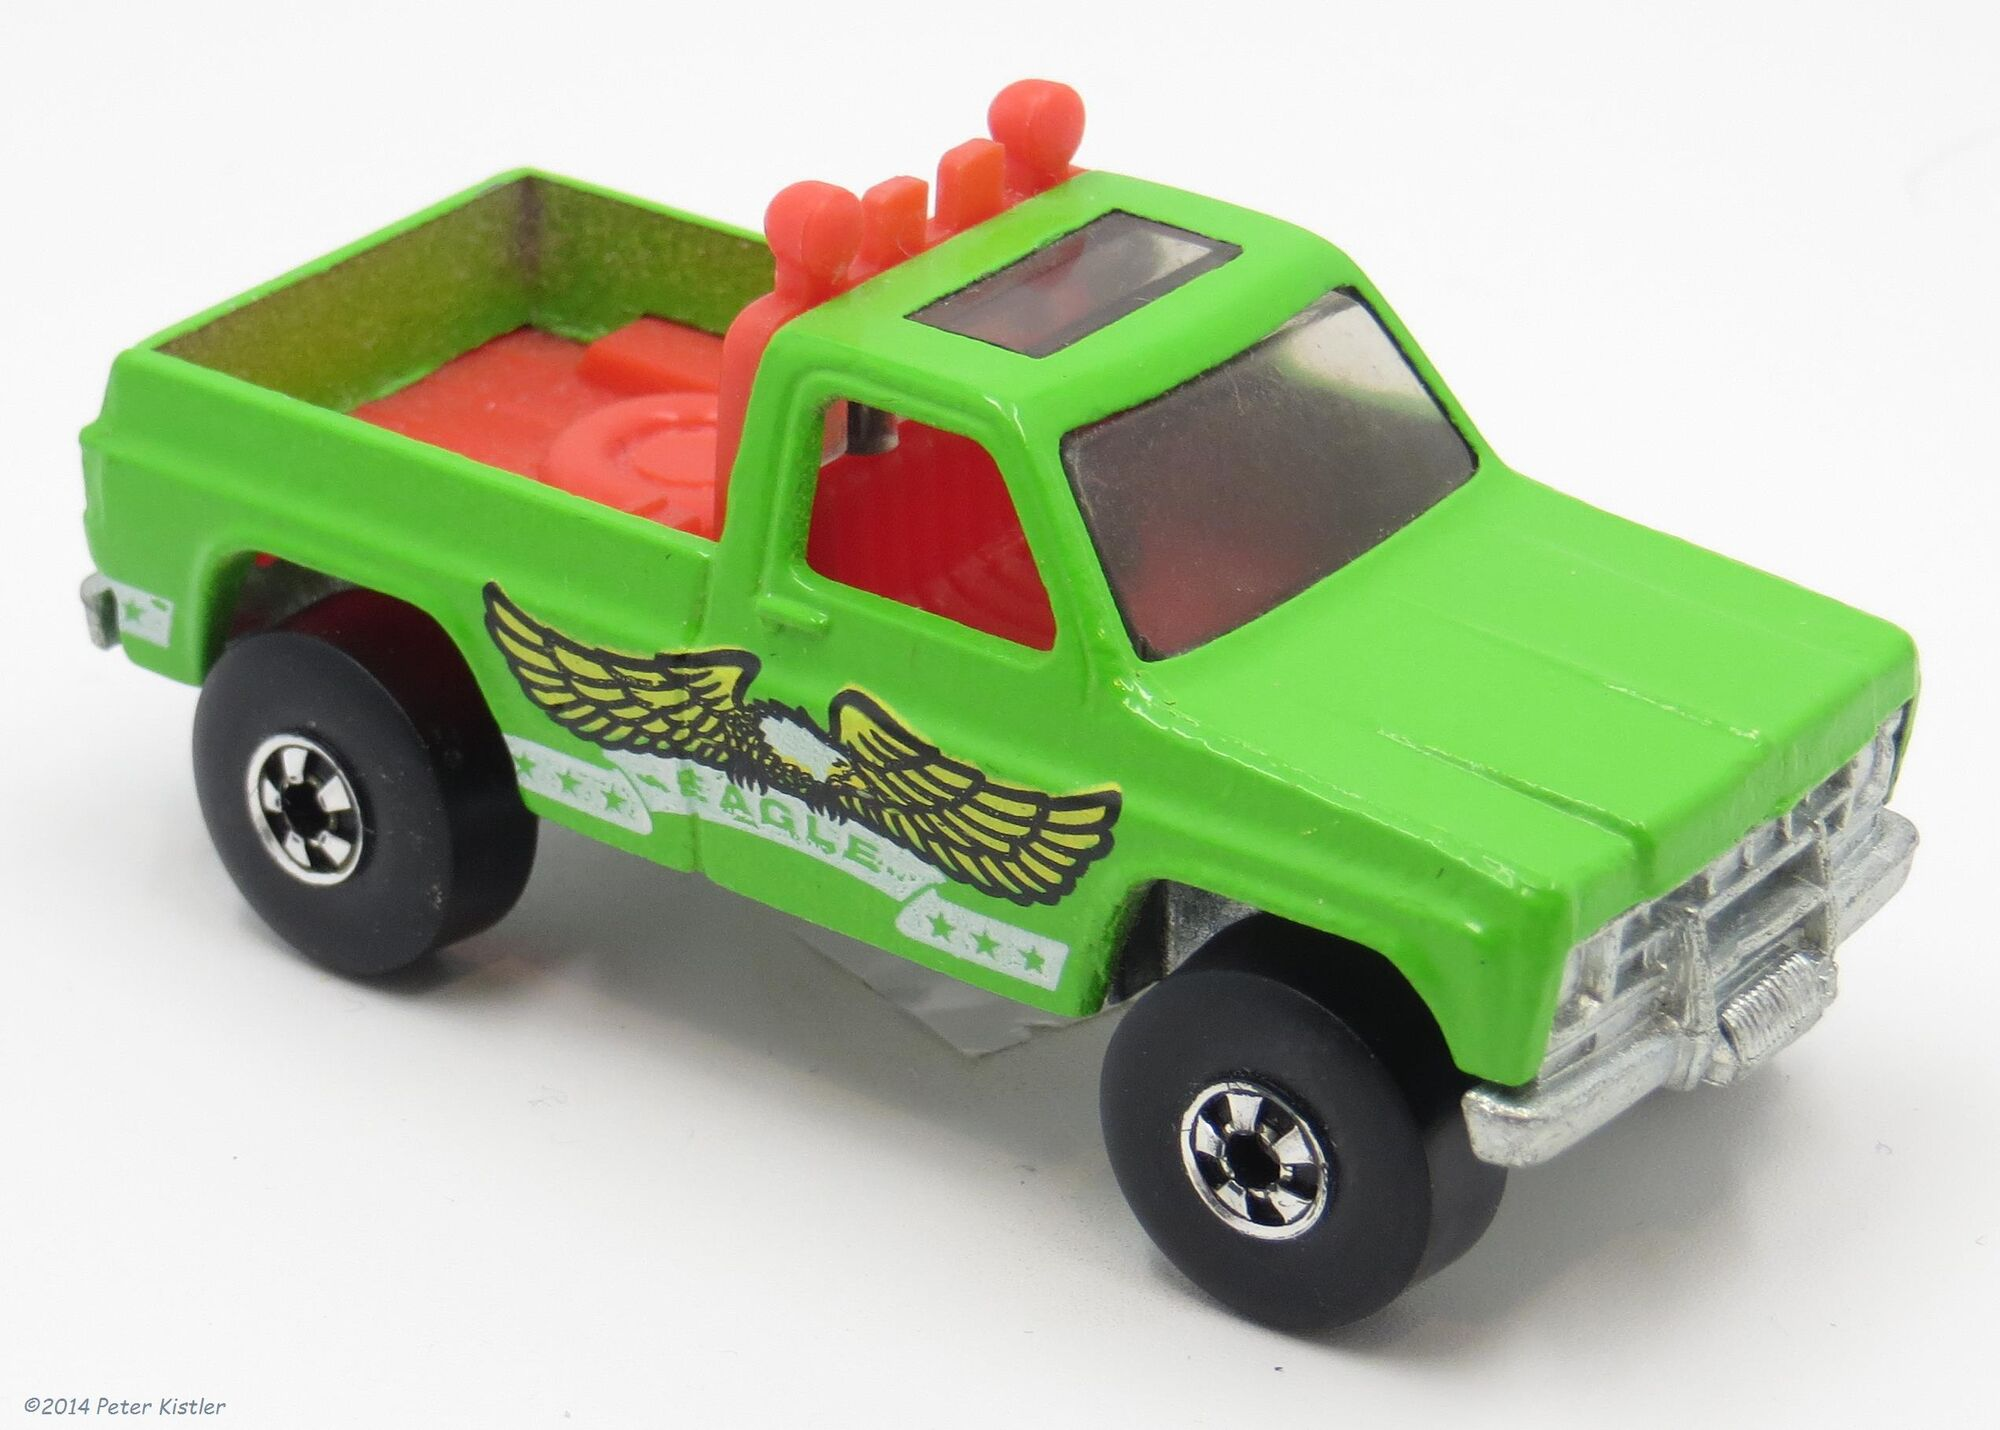 This is a graphic of Modest Pics of Hot Wheels